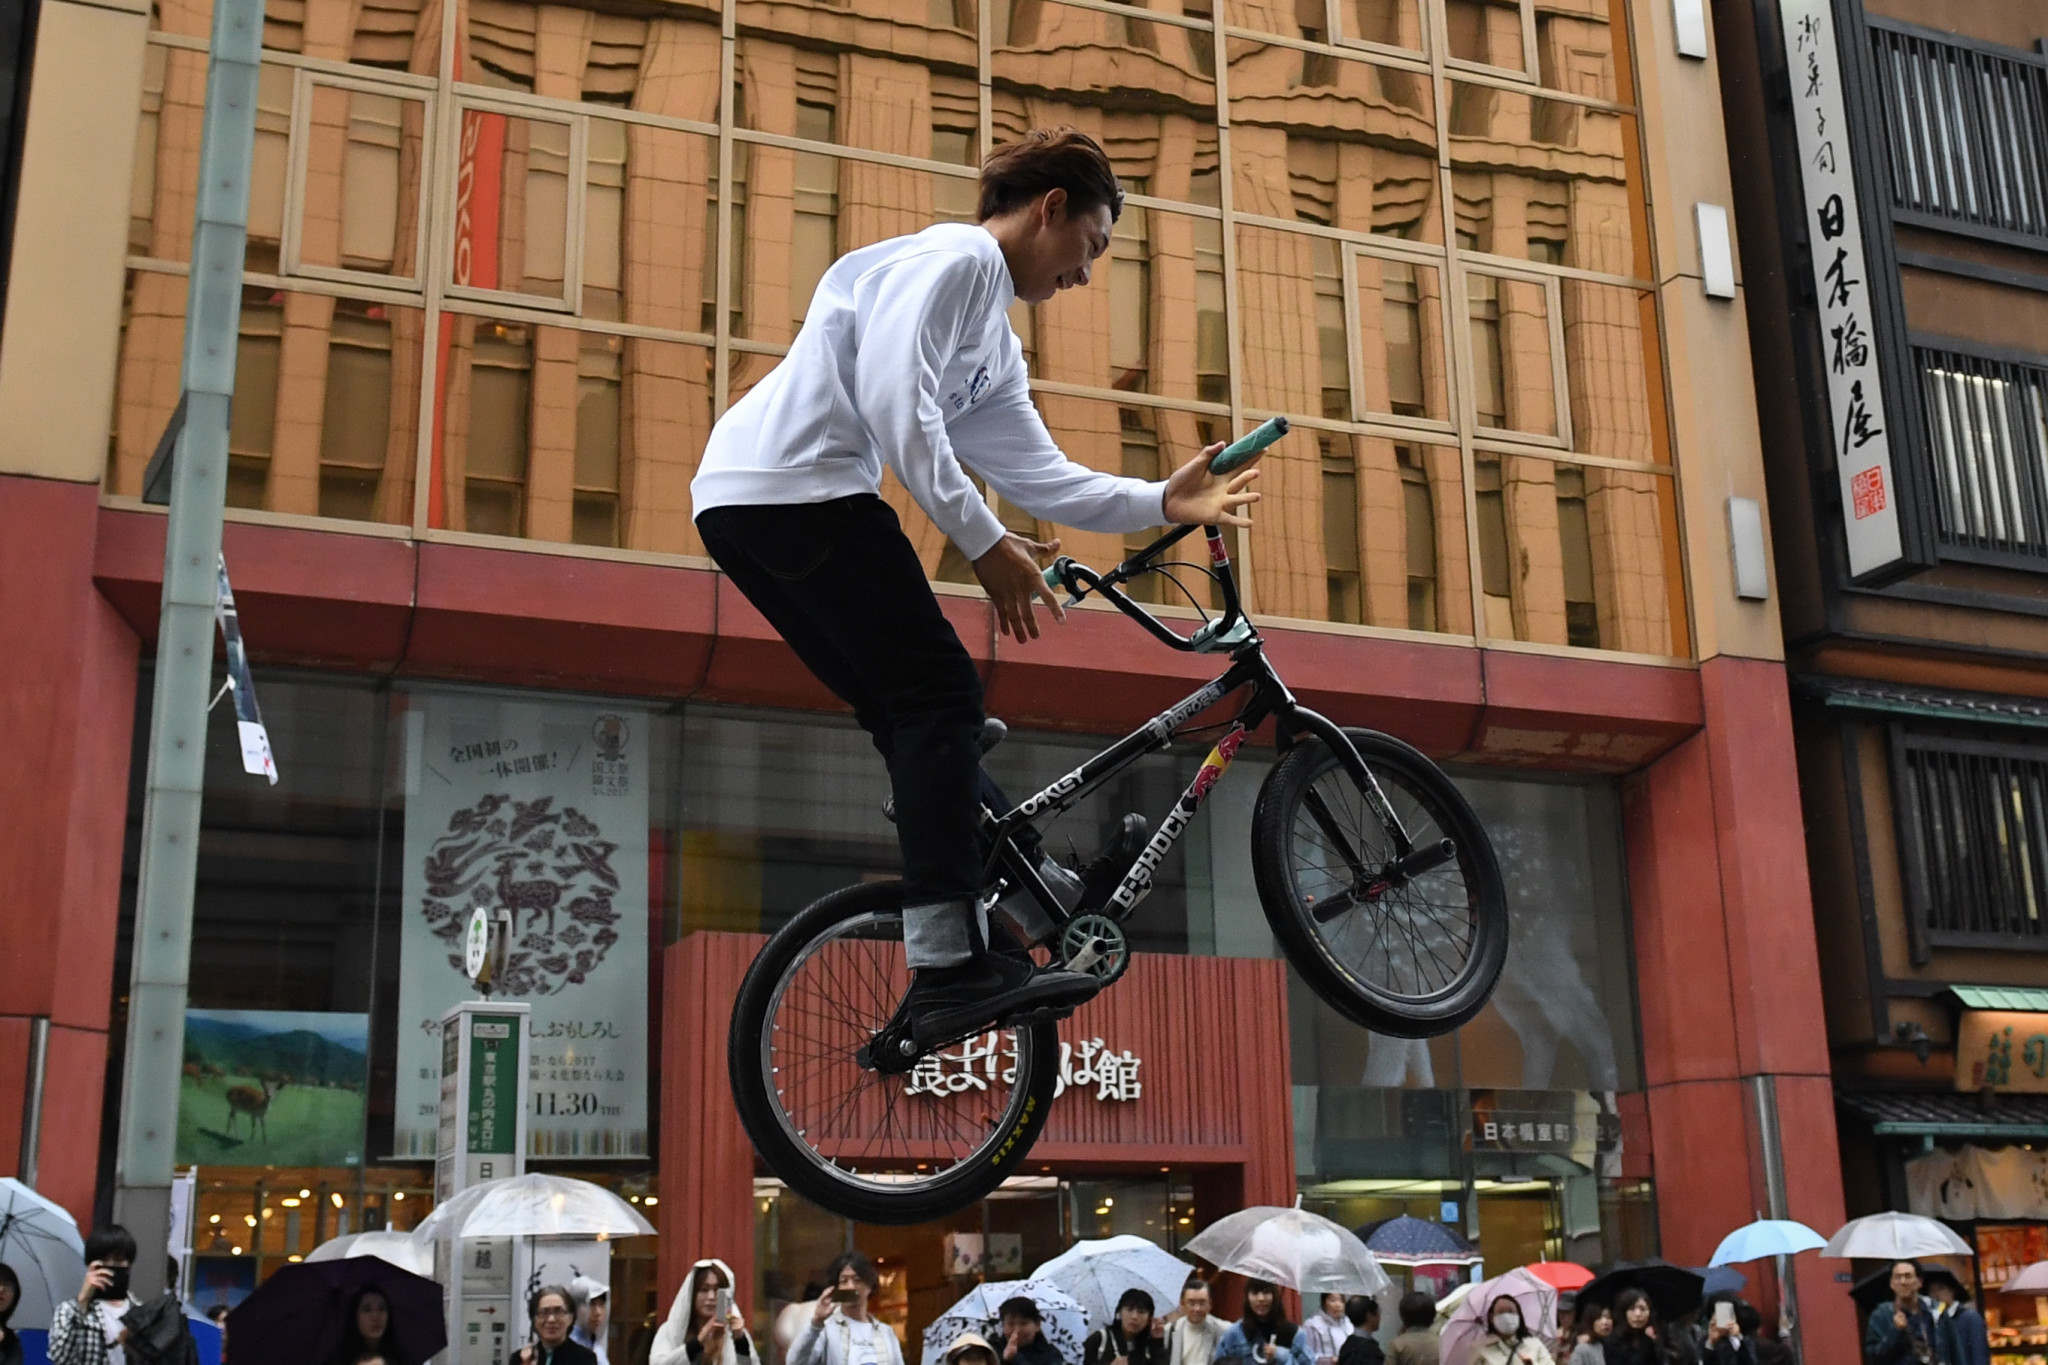 Tokyo 2020 and the IOC are in discussions over establishing zones to allow people to try urban sports ©Getty Images